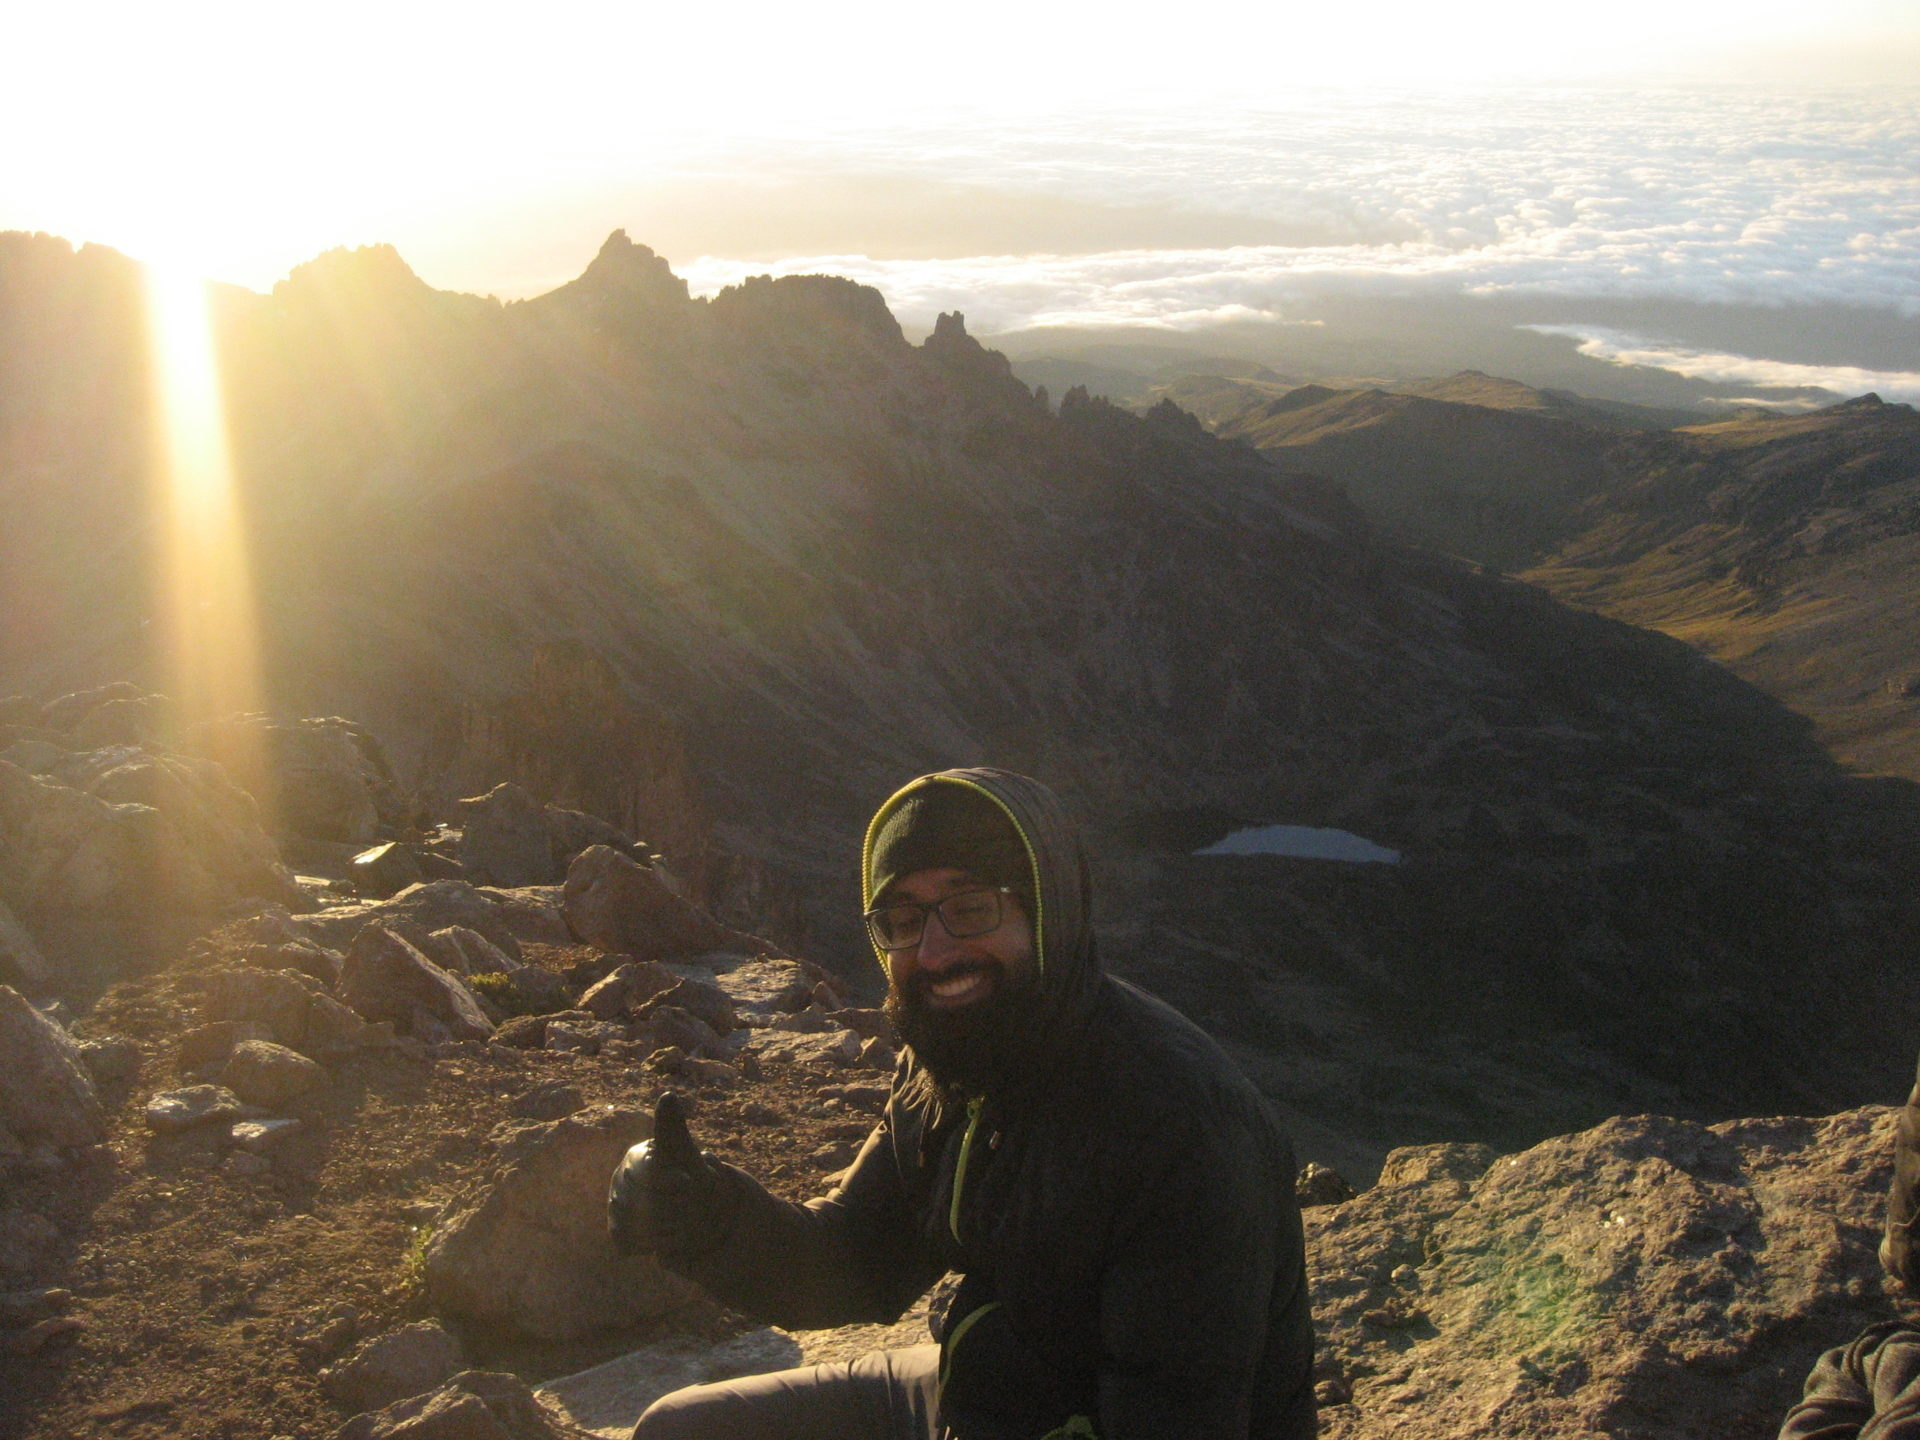 Sunrise from above the clouds at Lenana peak, Mount Kenya, in 2018.